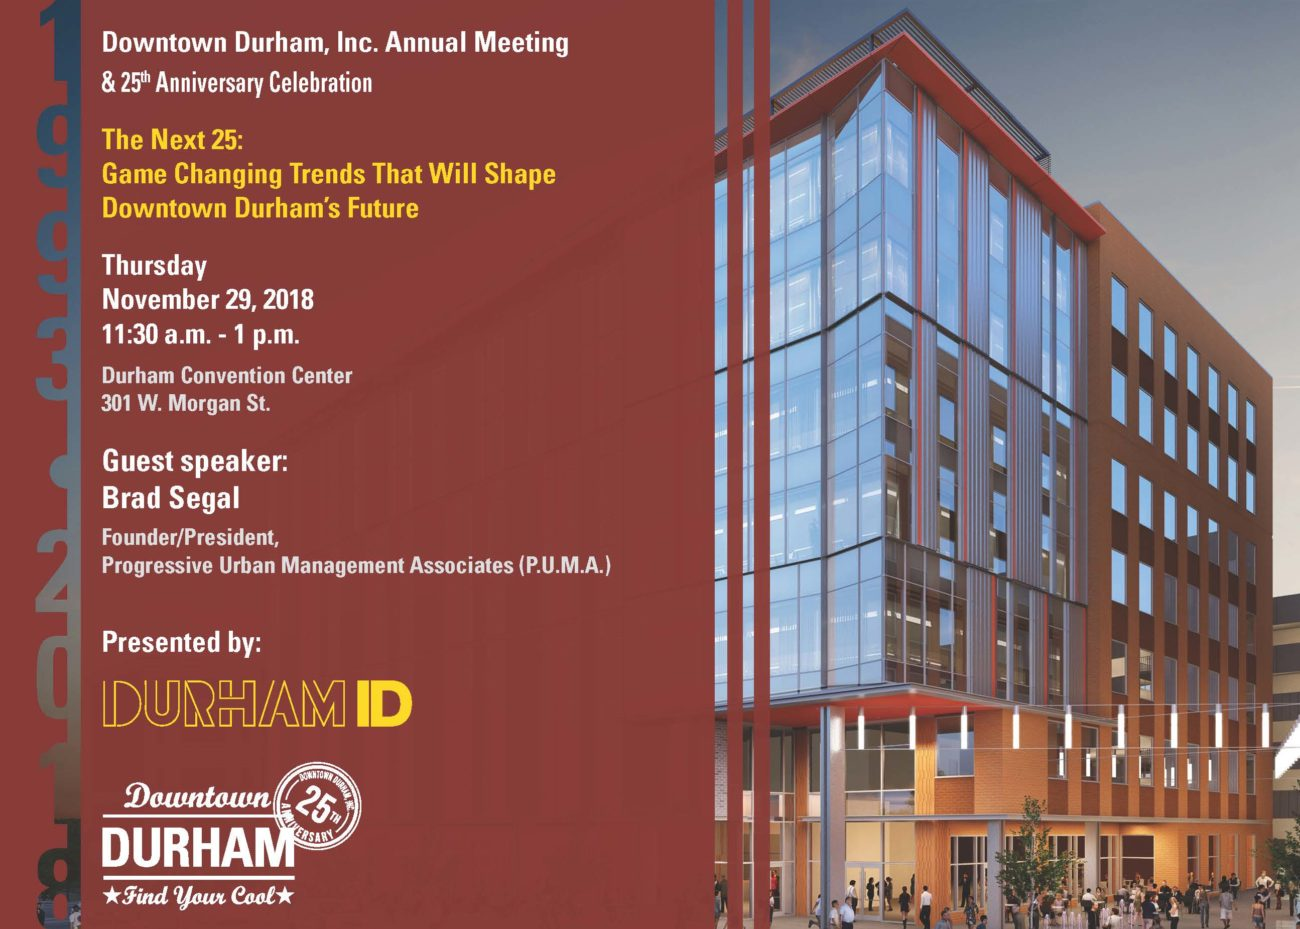 Annual Meeting Invite Front Image_Page_1